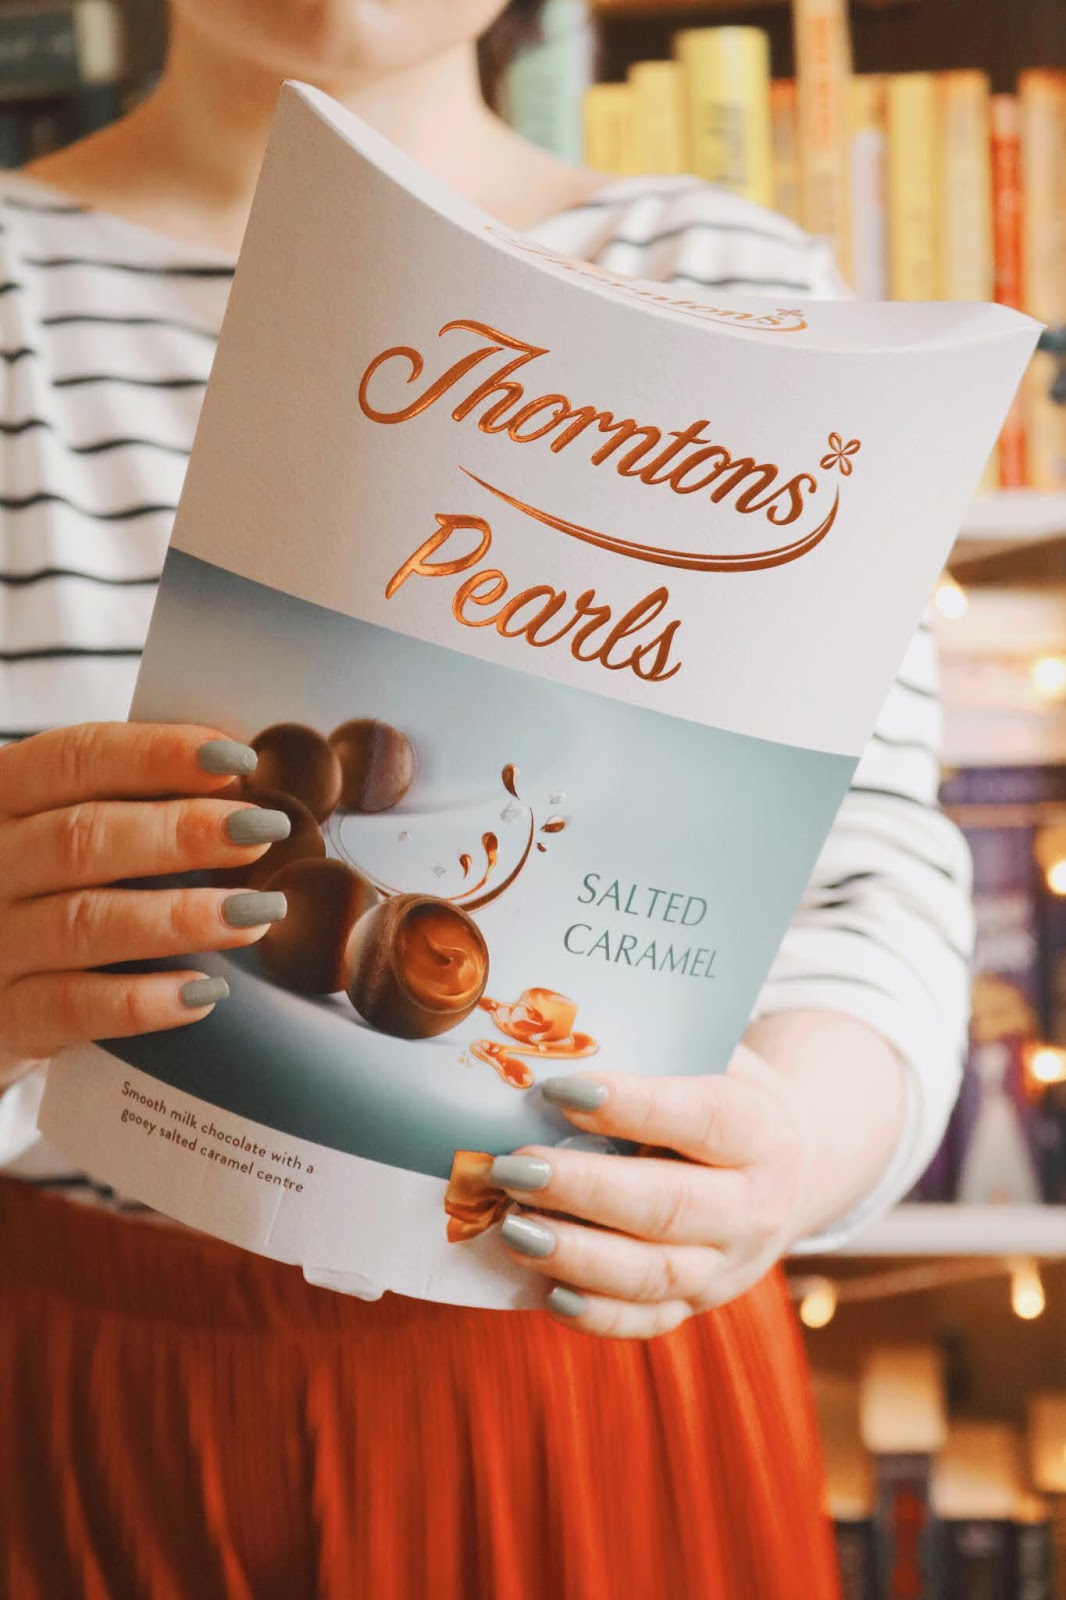 Gift Idea: Thorntons Pearls